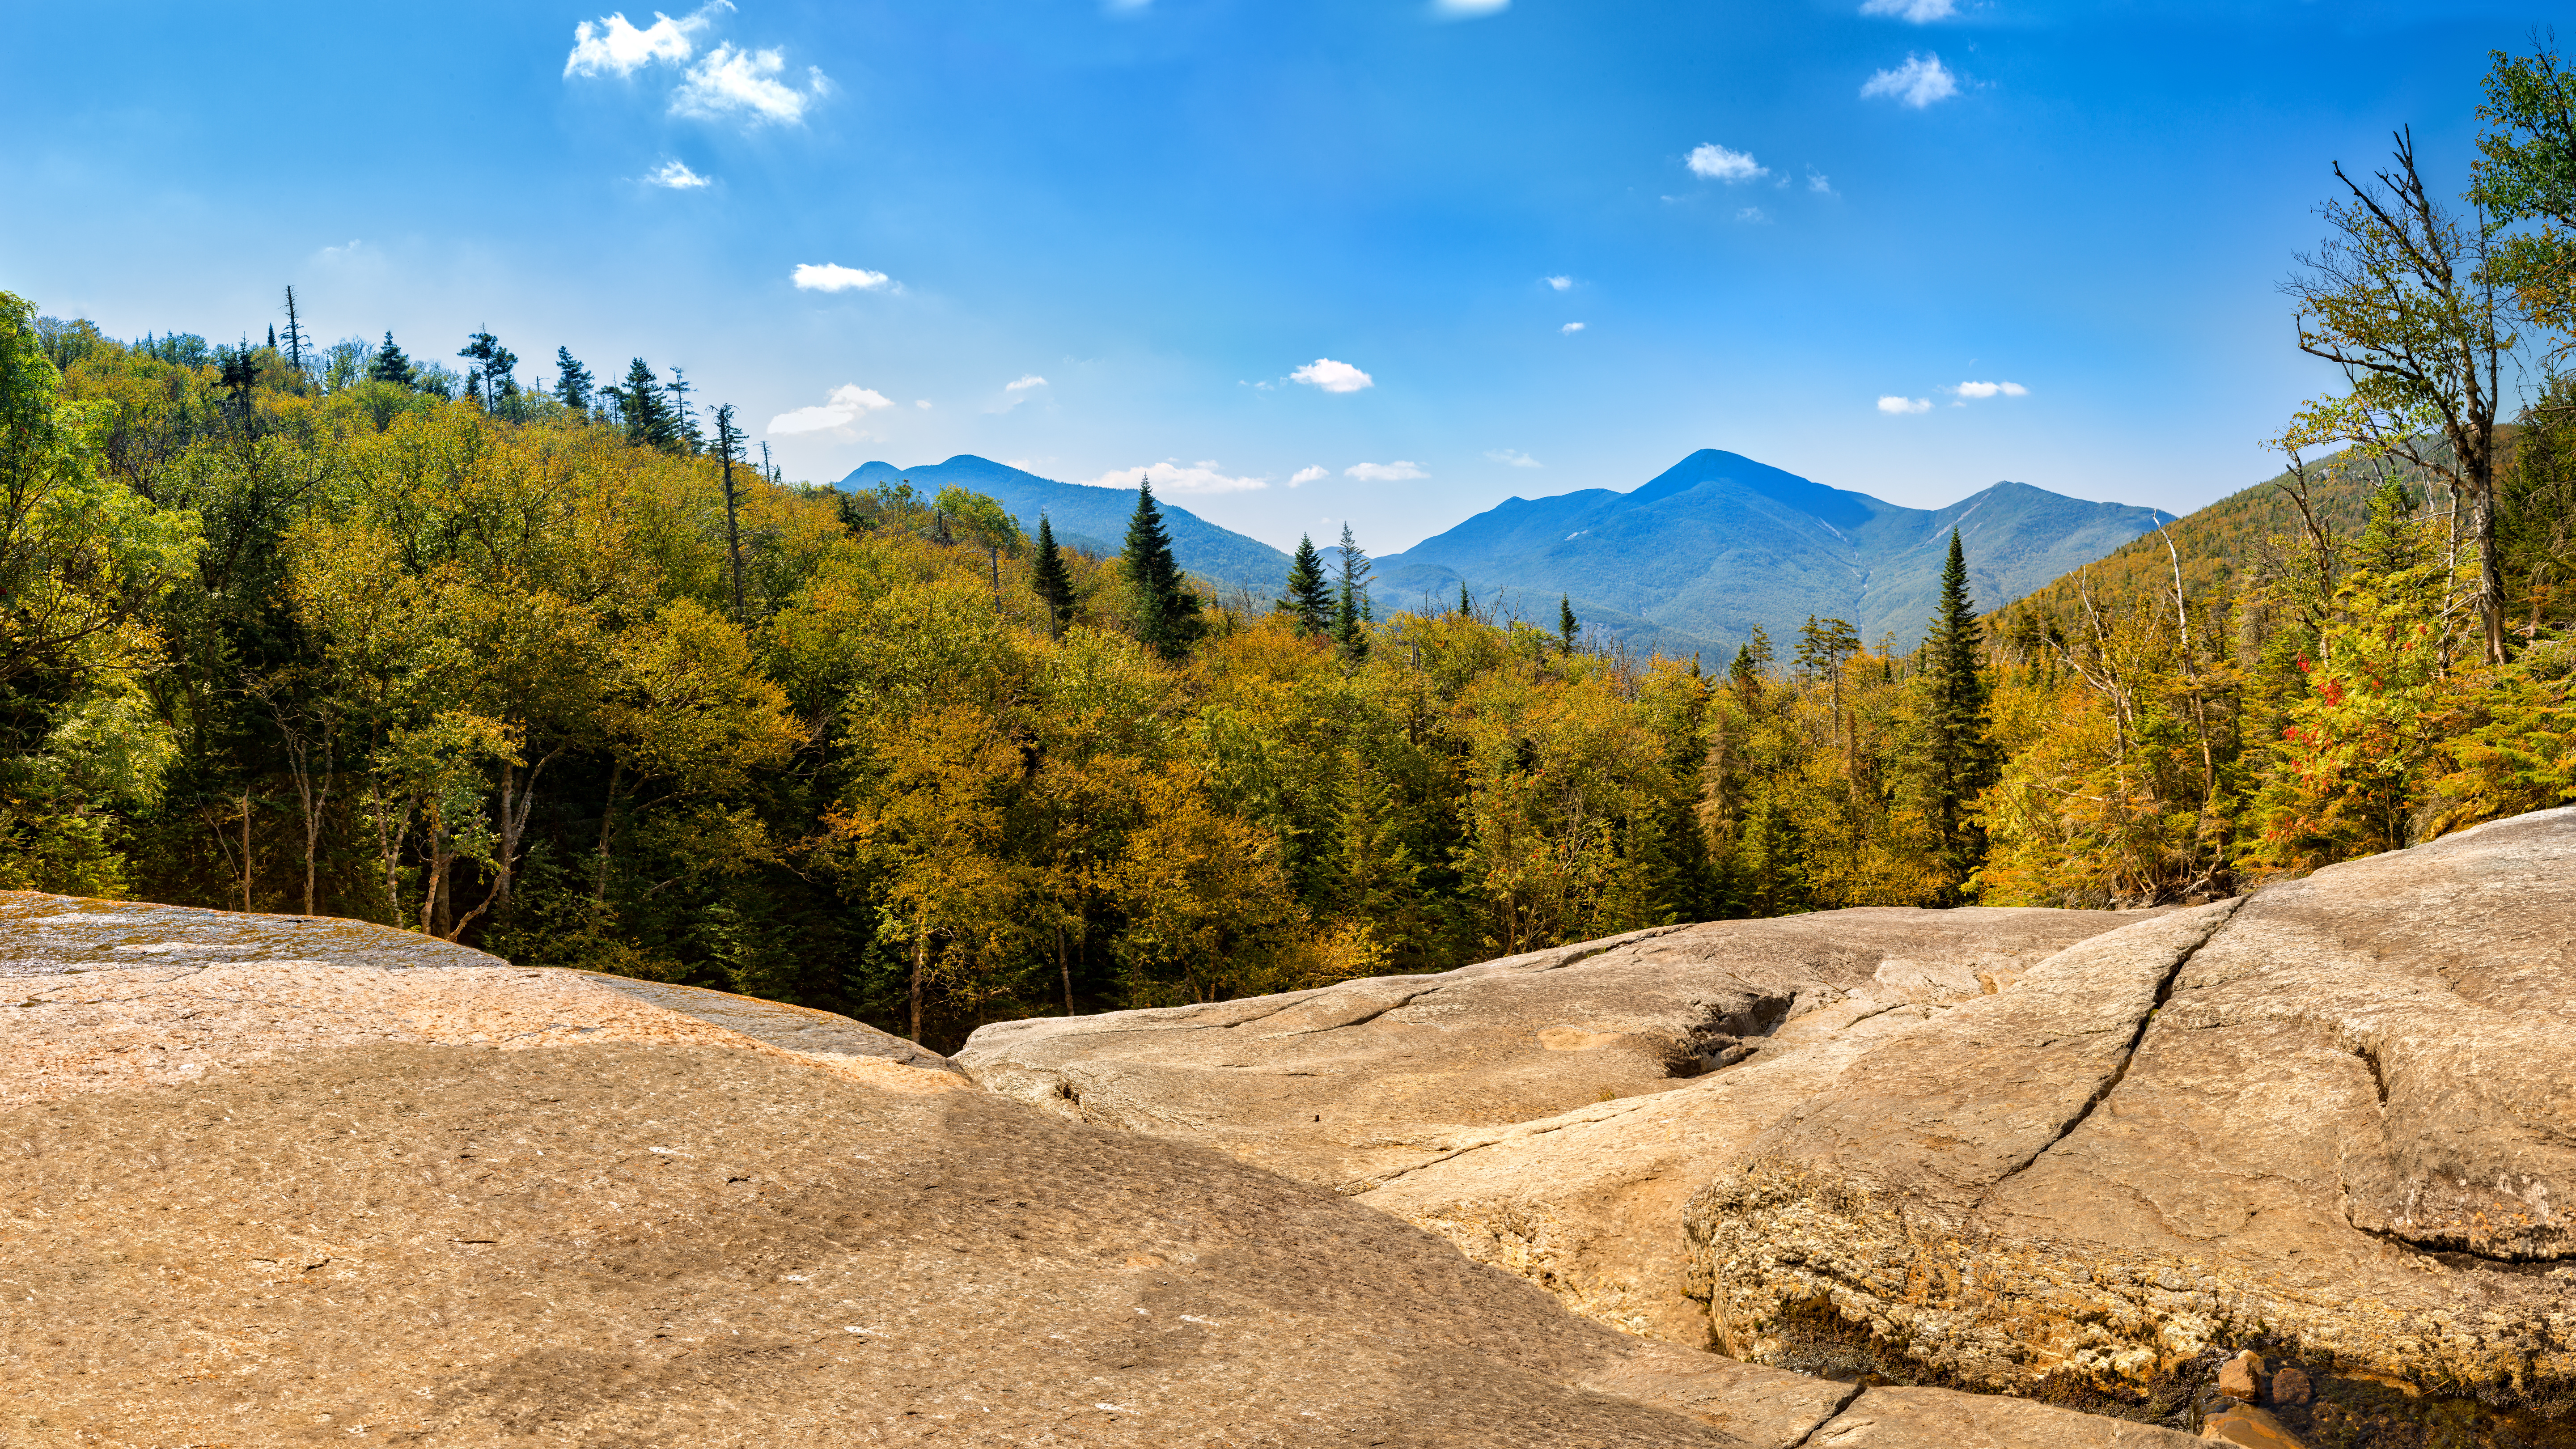 BEST HIKING LOCATIONS IN NEW YORK